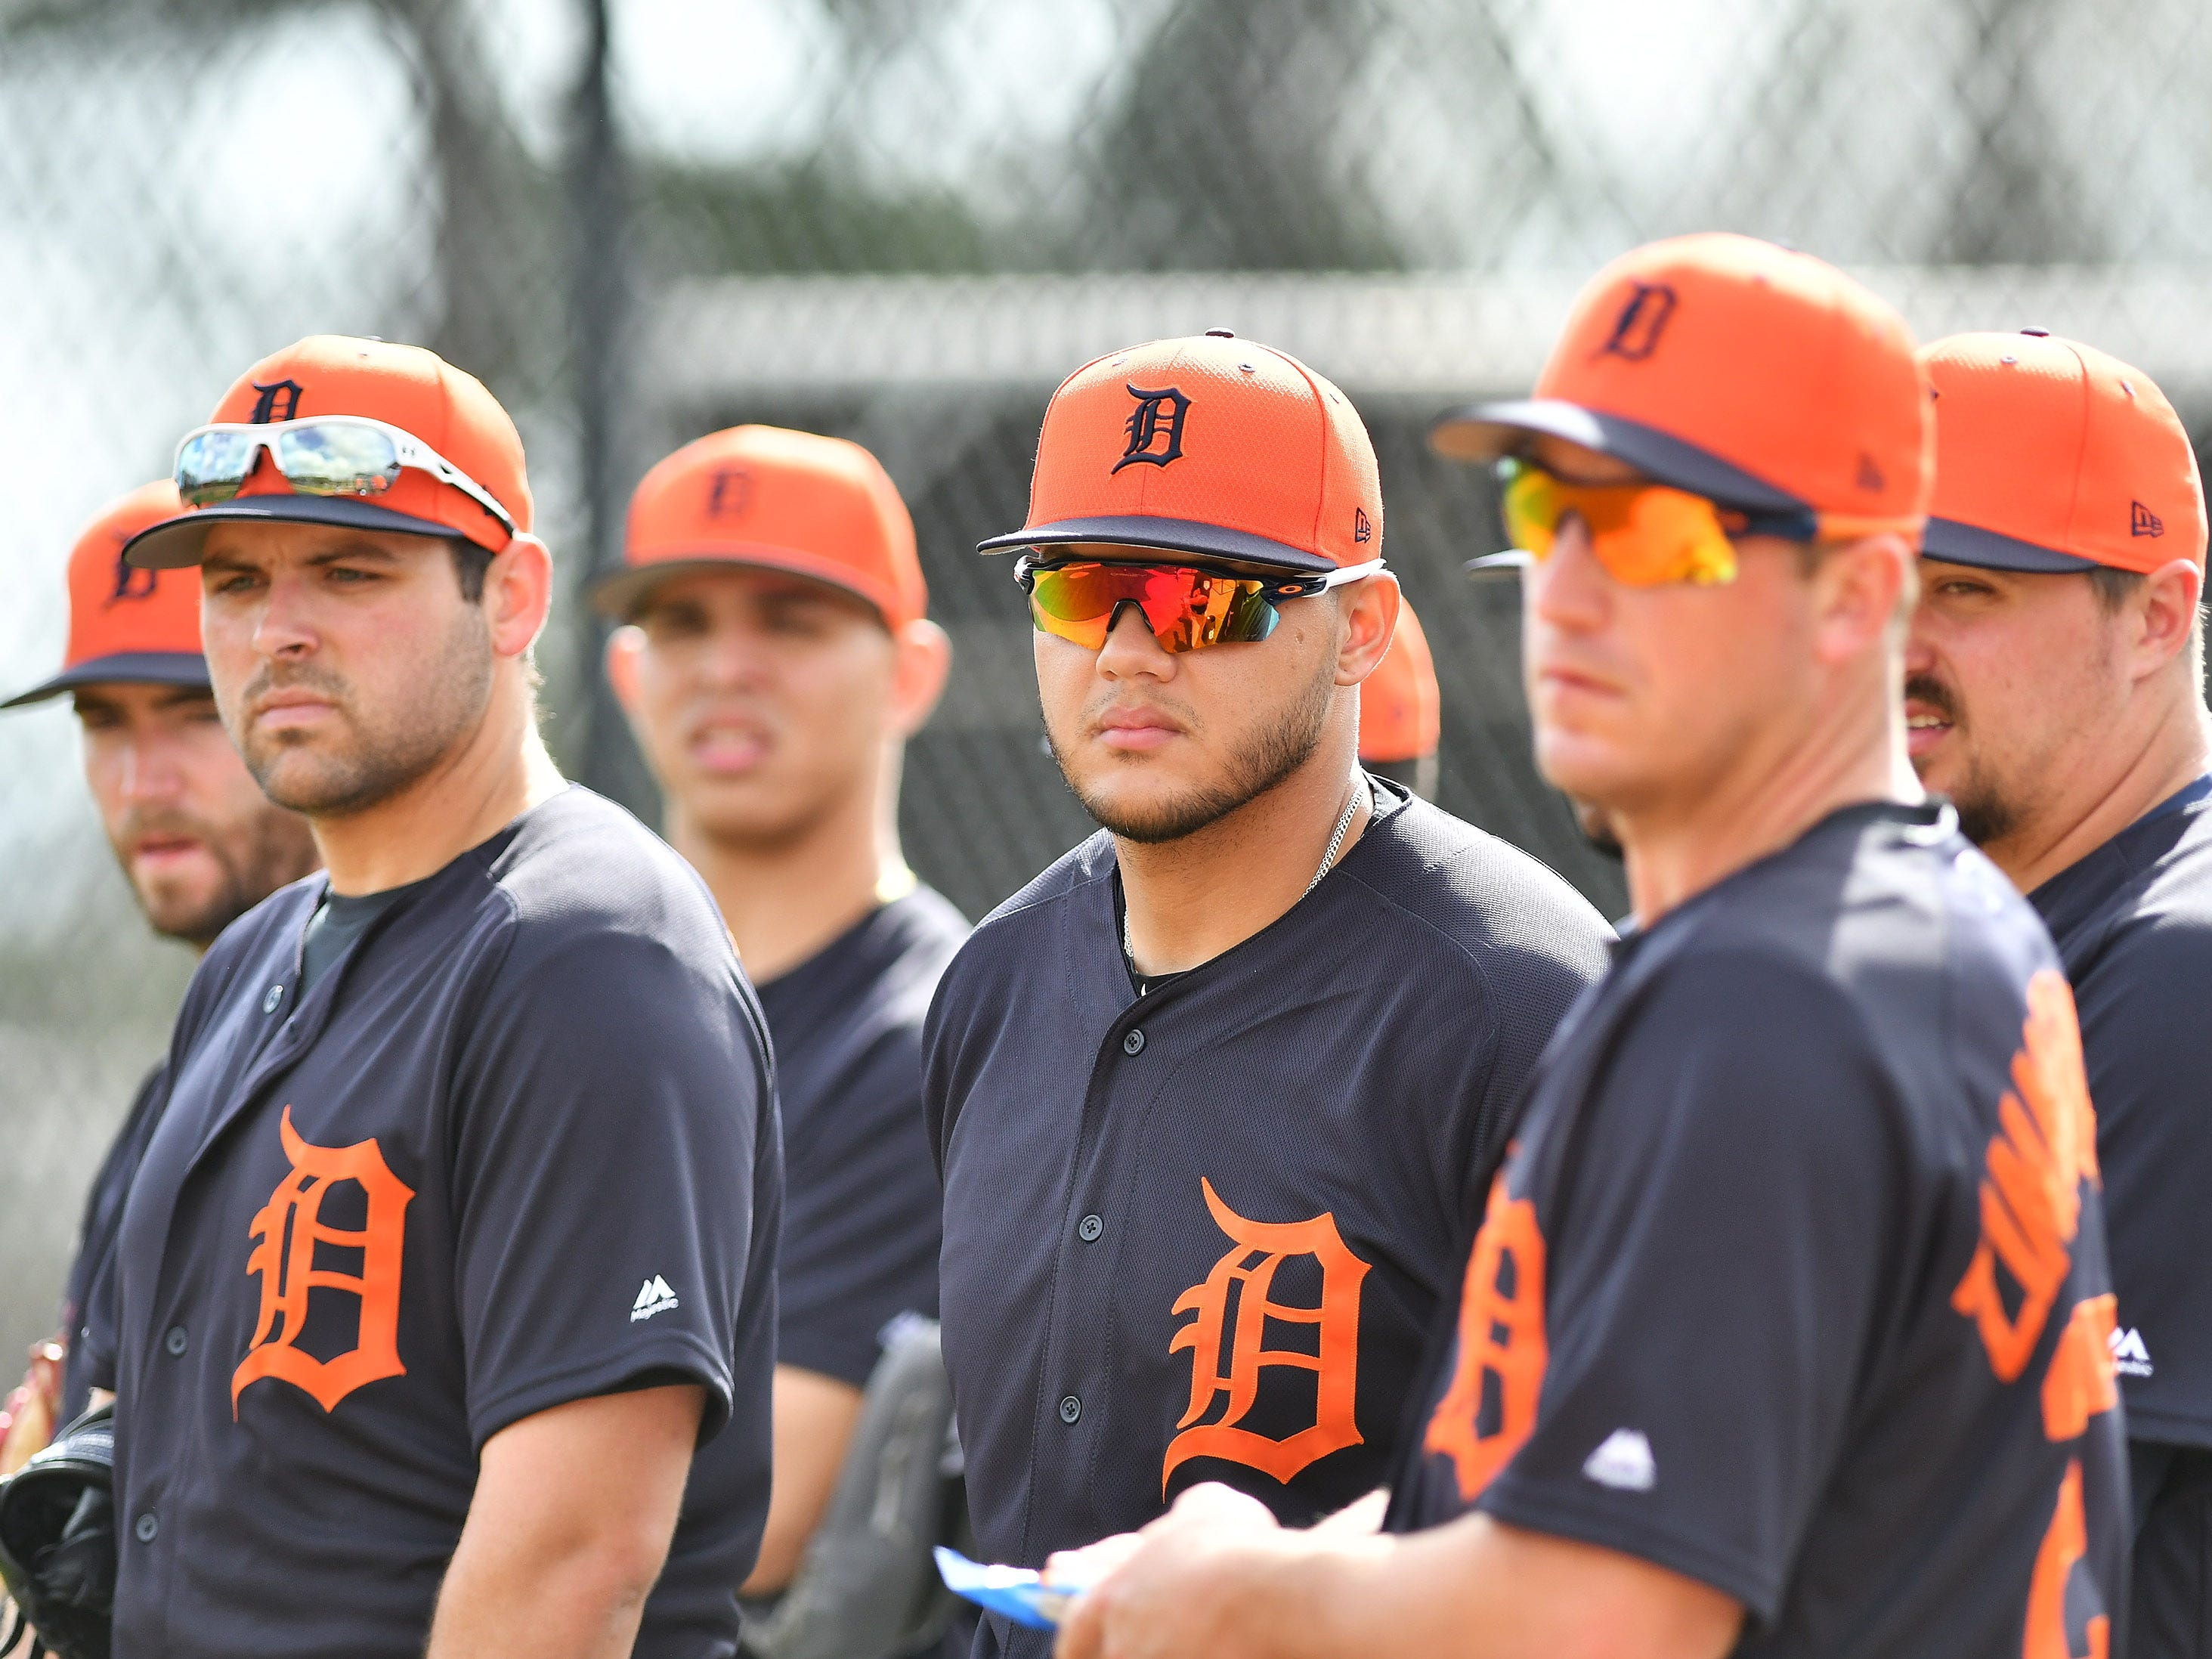 From left, Tigers pitchers Michael Fulmer, Franklin Perez, Joe Jimenez, Jordan Zimmermann and Blaine Hardy watches pitchers infield practice.